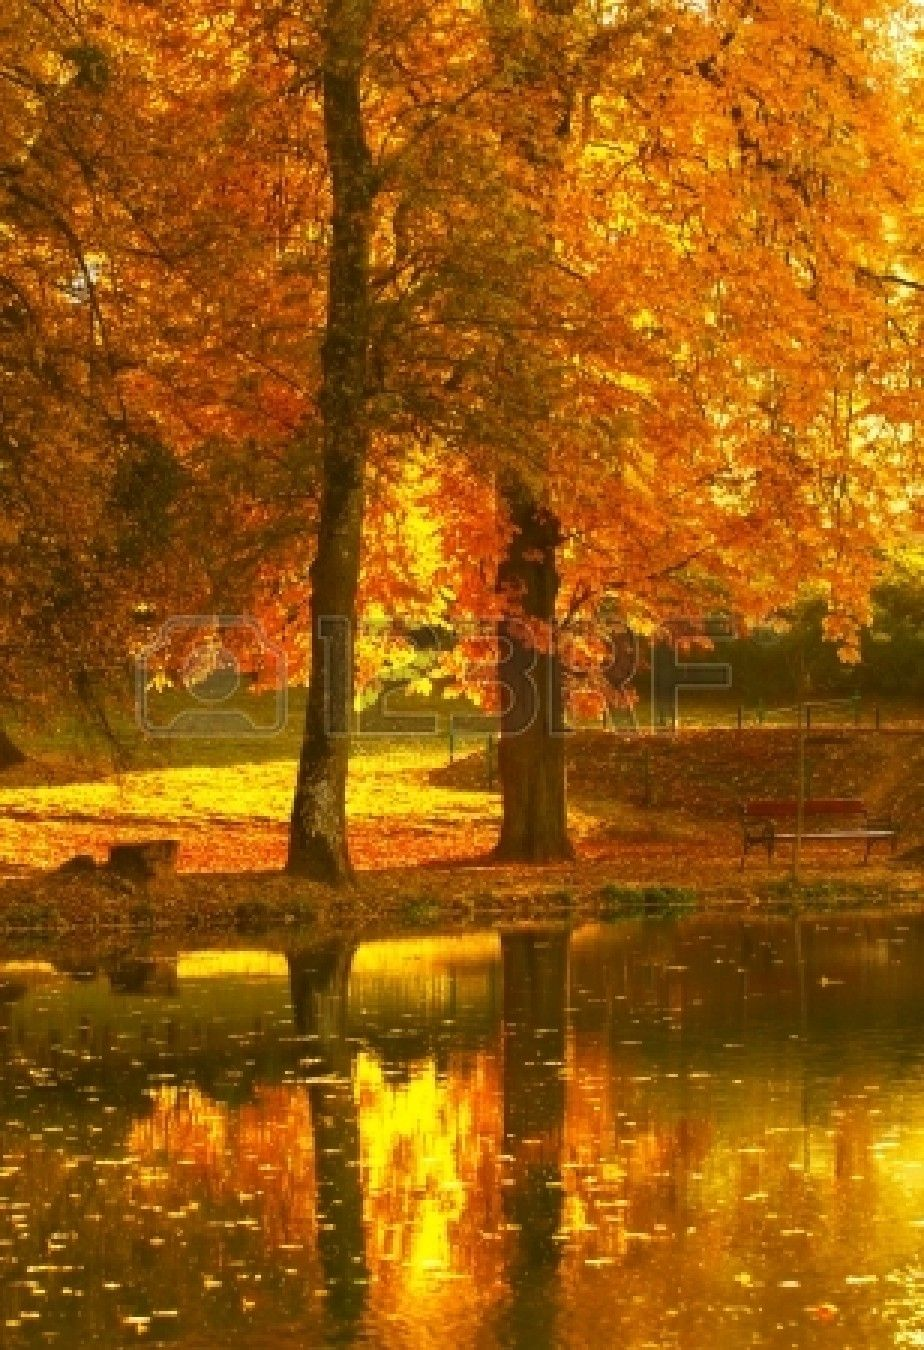 In This Photo The Beautiful Autumn Wood Is Shown Autumn Landscape Autumn Scenery Autumn Scenes